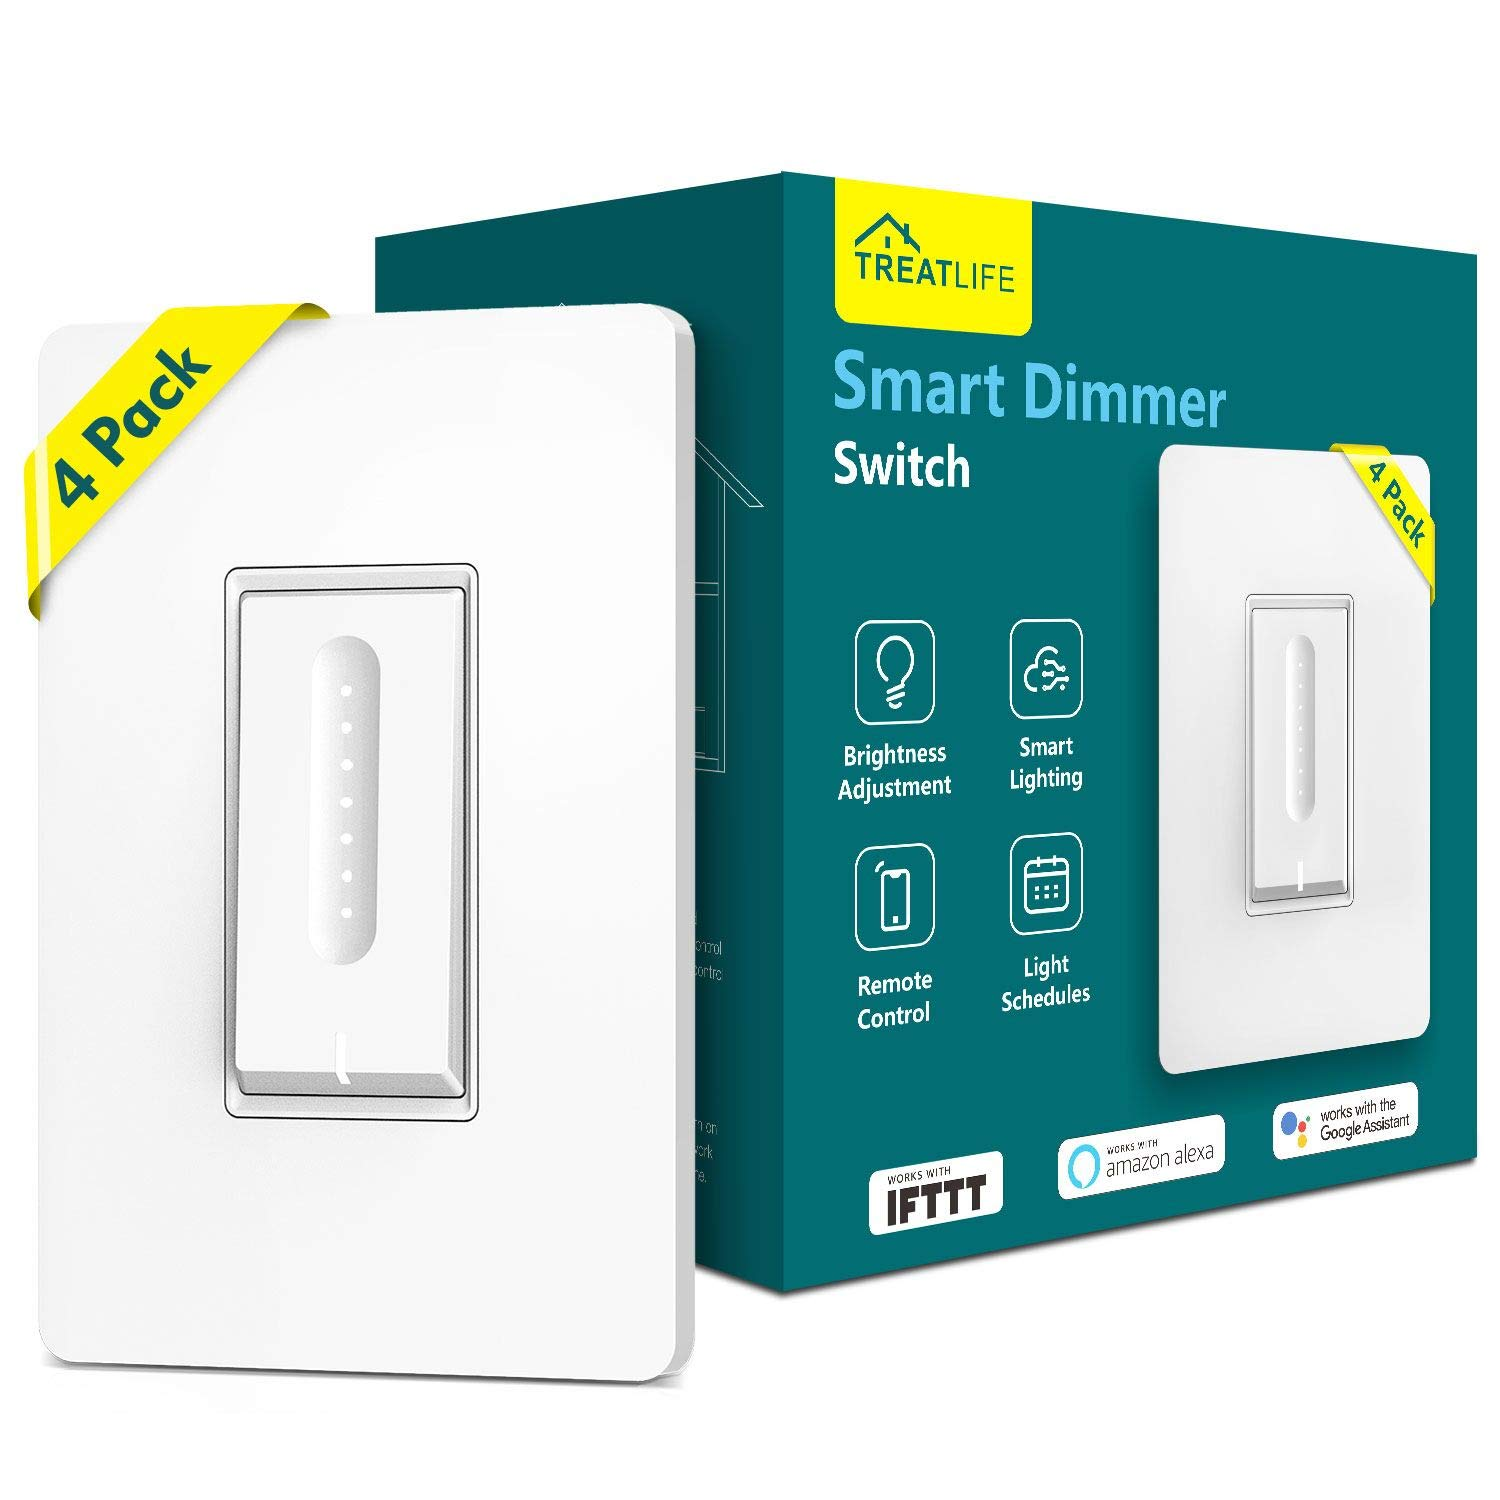 Smart Dimmer Switch,Treatlife WiFi Light Switch for Dimmable LED, Halogen & Incandescent Bulbs, Compatible with Alexa, Google Home & IFTTT, App Remote Control, Single-Pole Dimmer Switch(4 PACK)